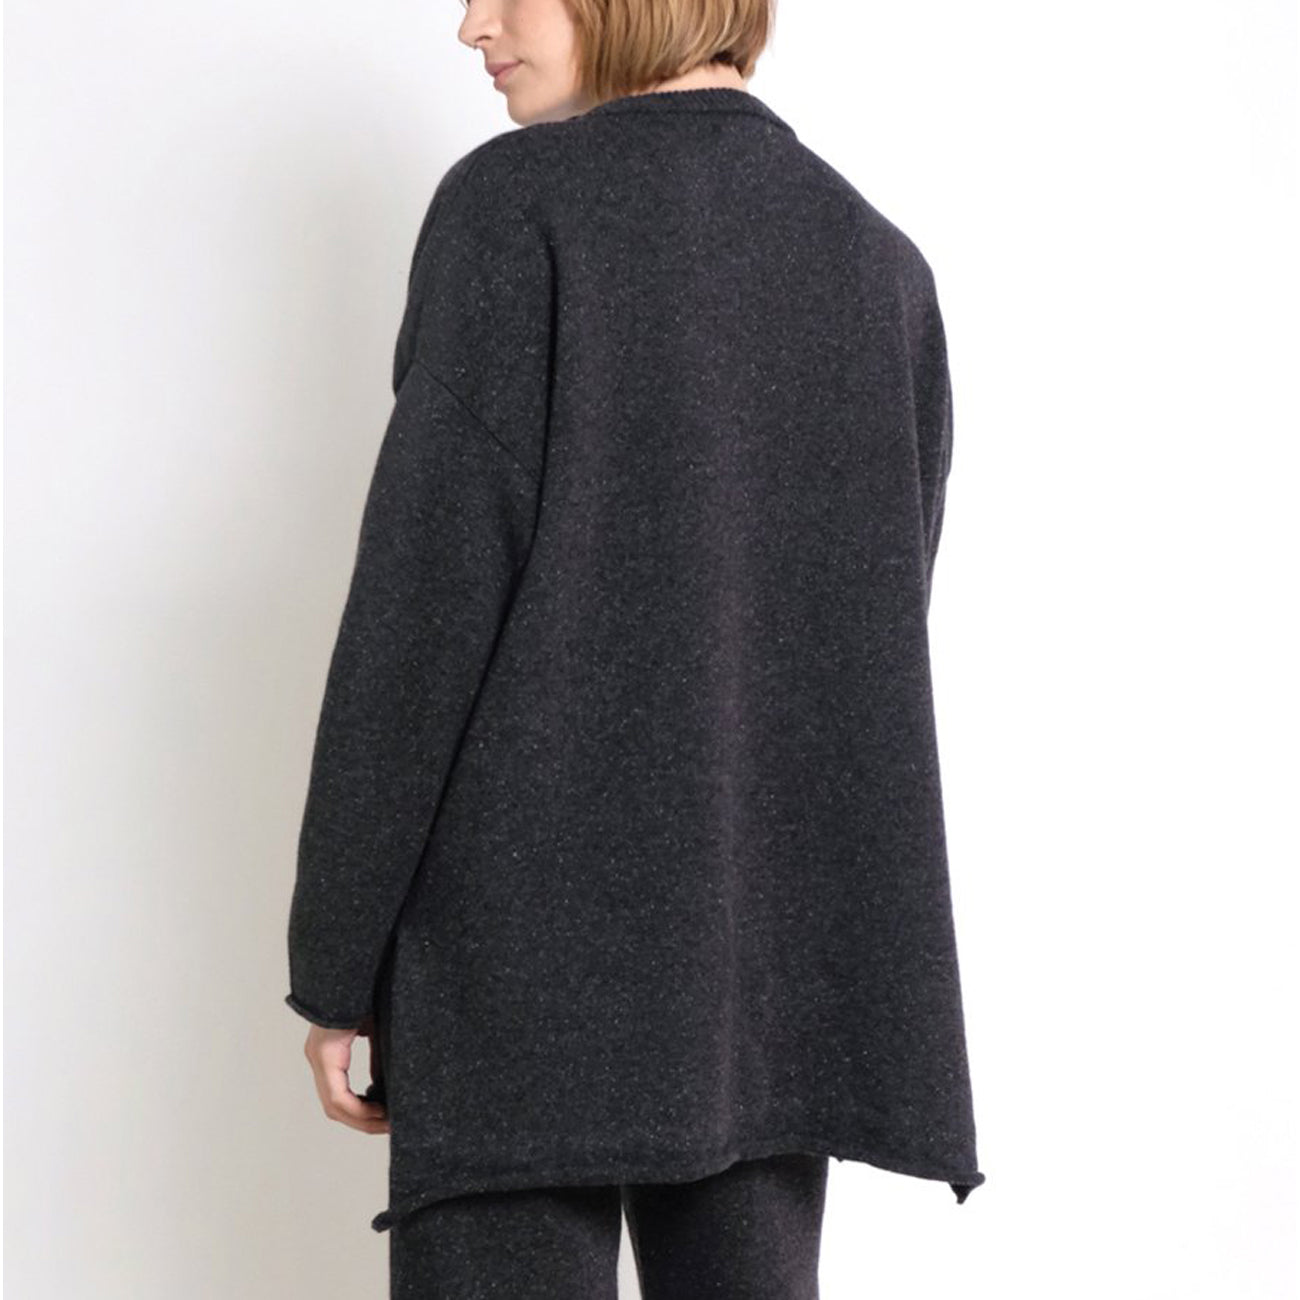 hi lo sweater in speckle black